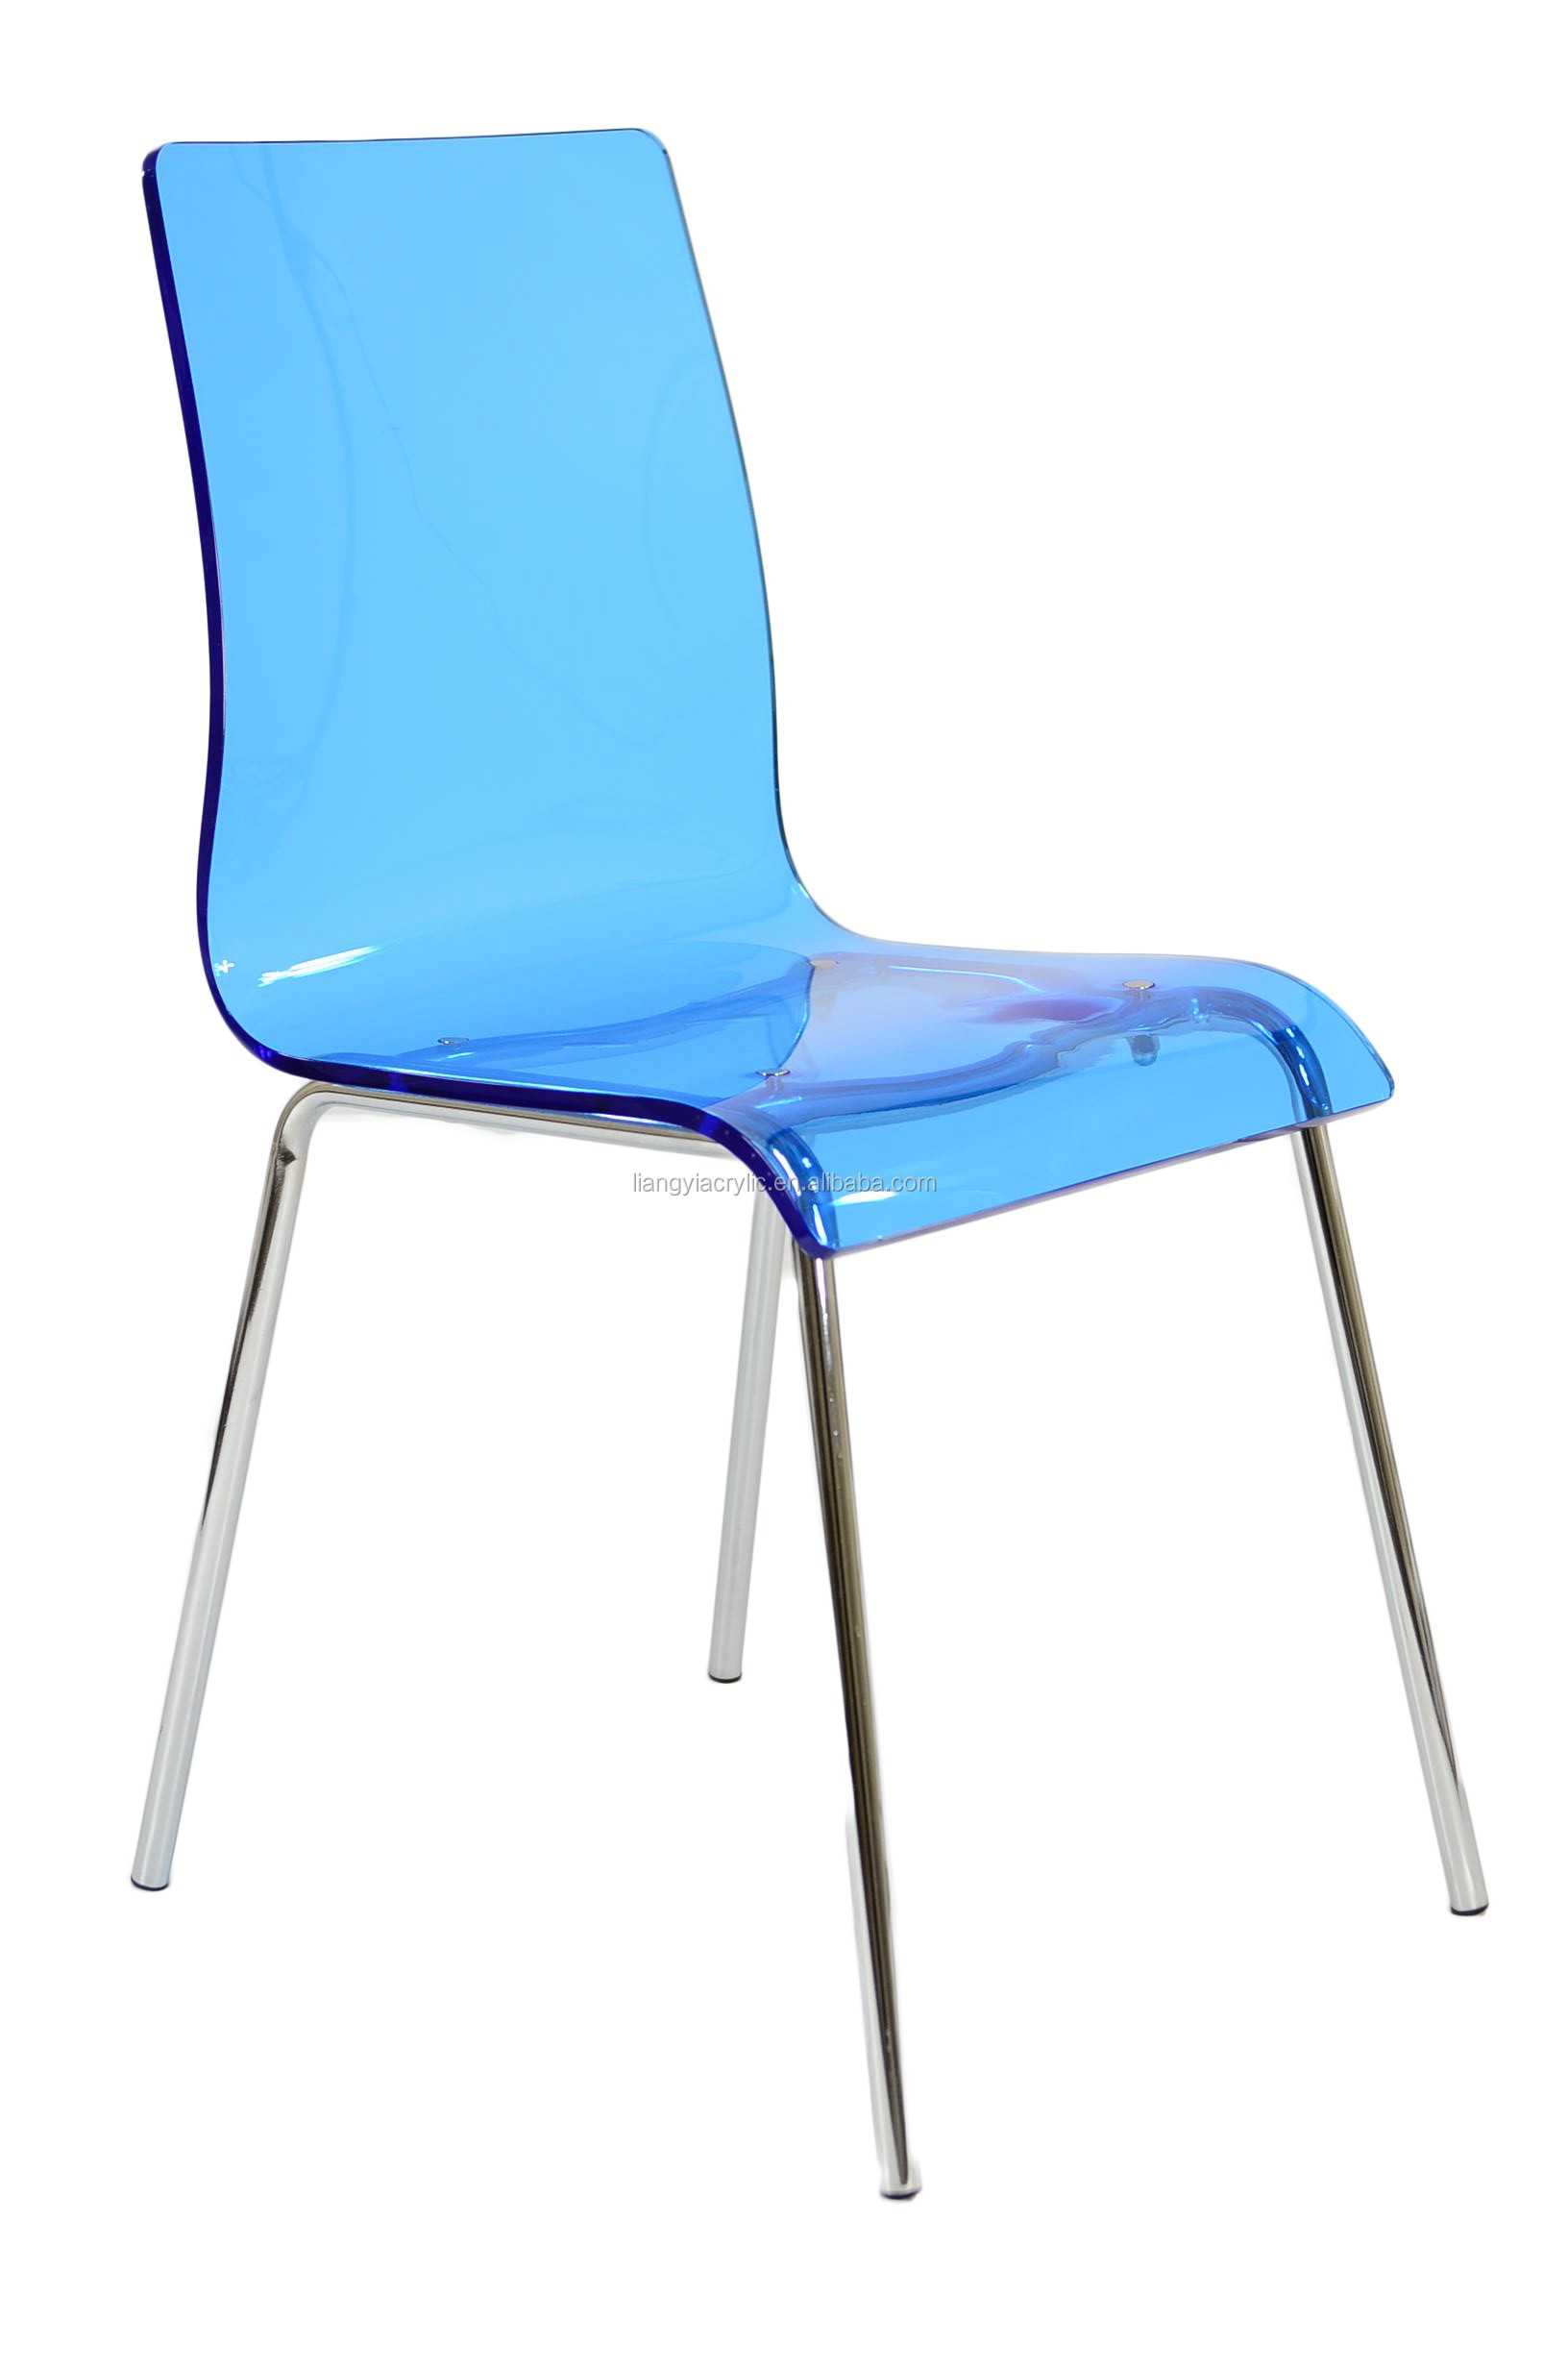 High Quality Beautiful Blue Acrylic Chair Buy Blue Acrylic Chair